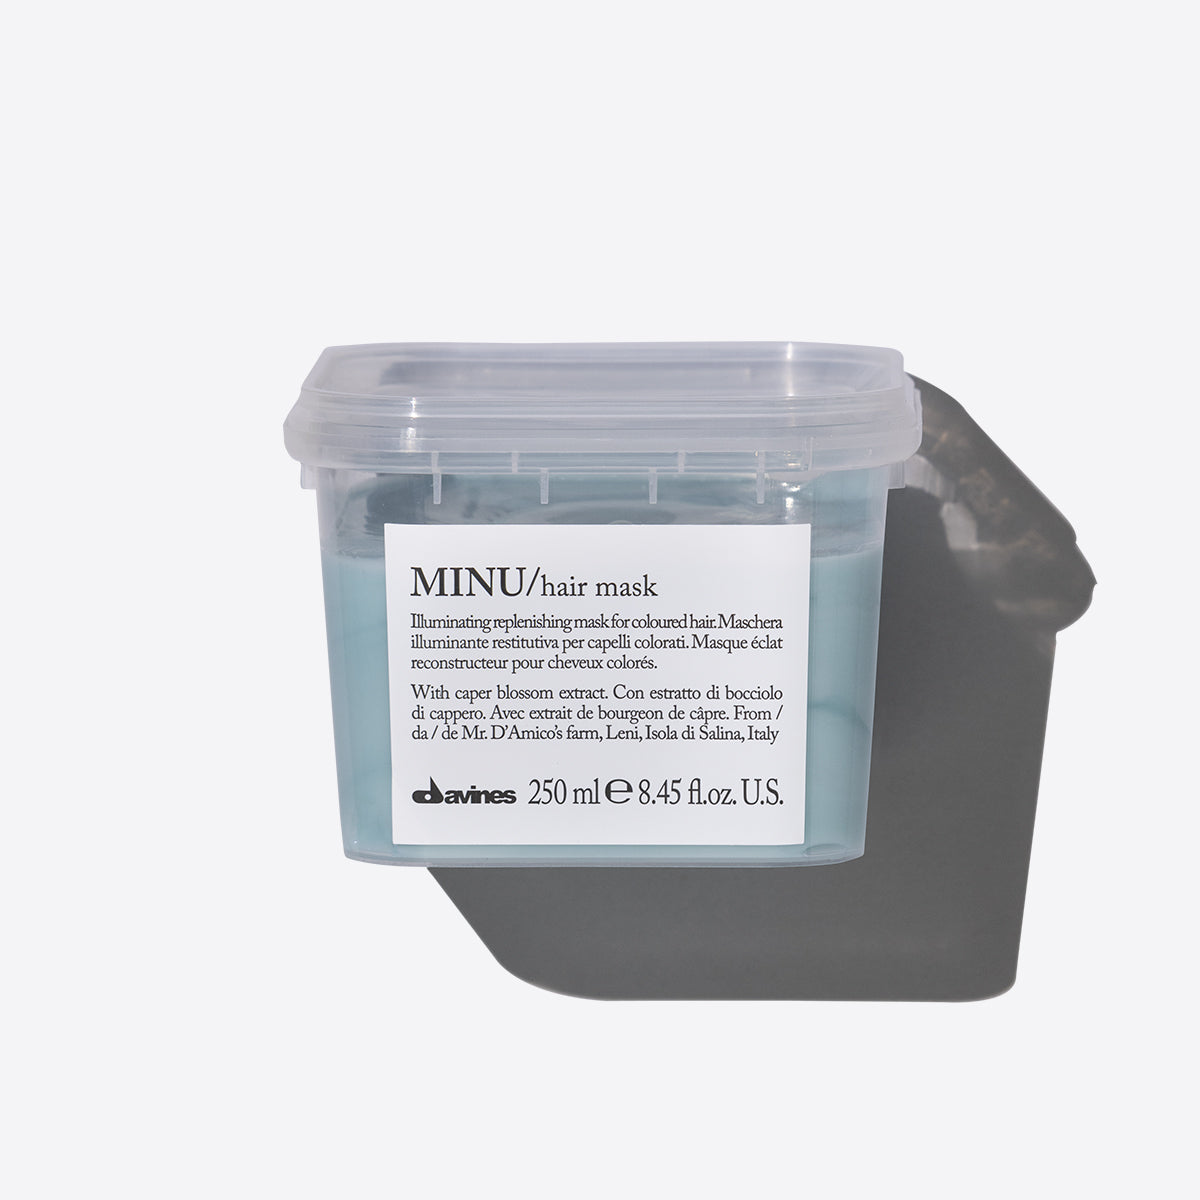 MINU Hair Mask 1  250 ml / 8,45 fl.oz.Davines